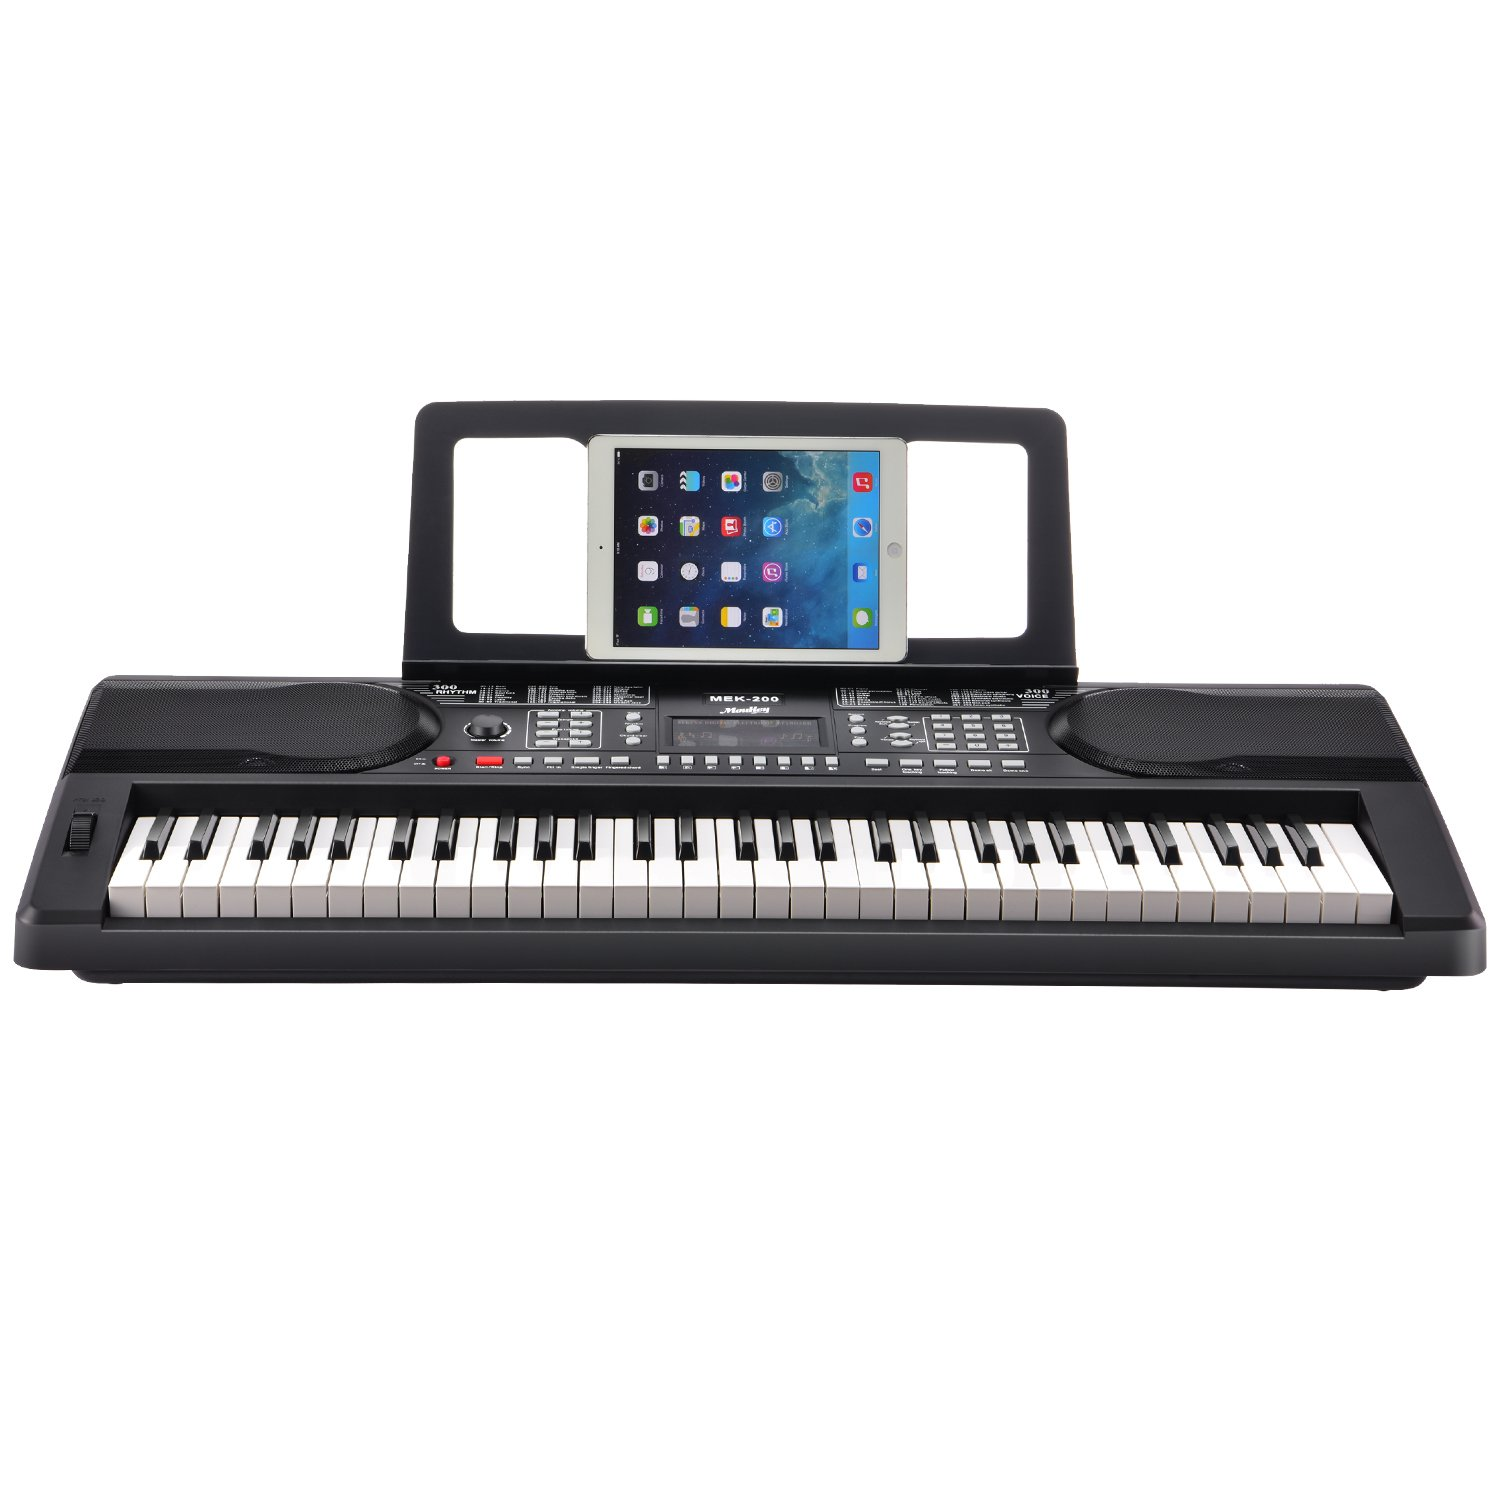 Moukey MEK-200 Electric Keyboard Portable Piano Keyboard Music Kit with Stand, Bench, Headphone, Microphone & Sticker, 61 Key Keyboard, Black by Moukey (Image #2)